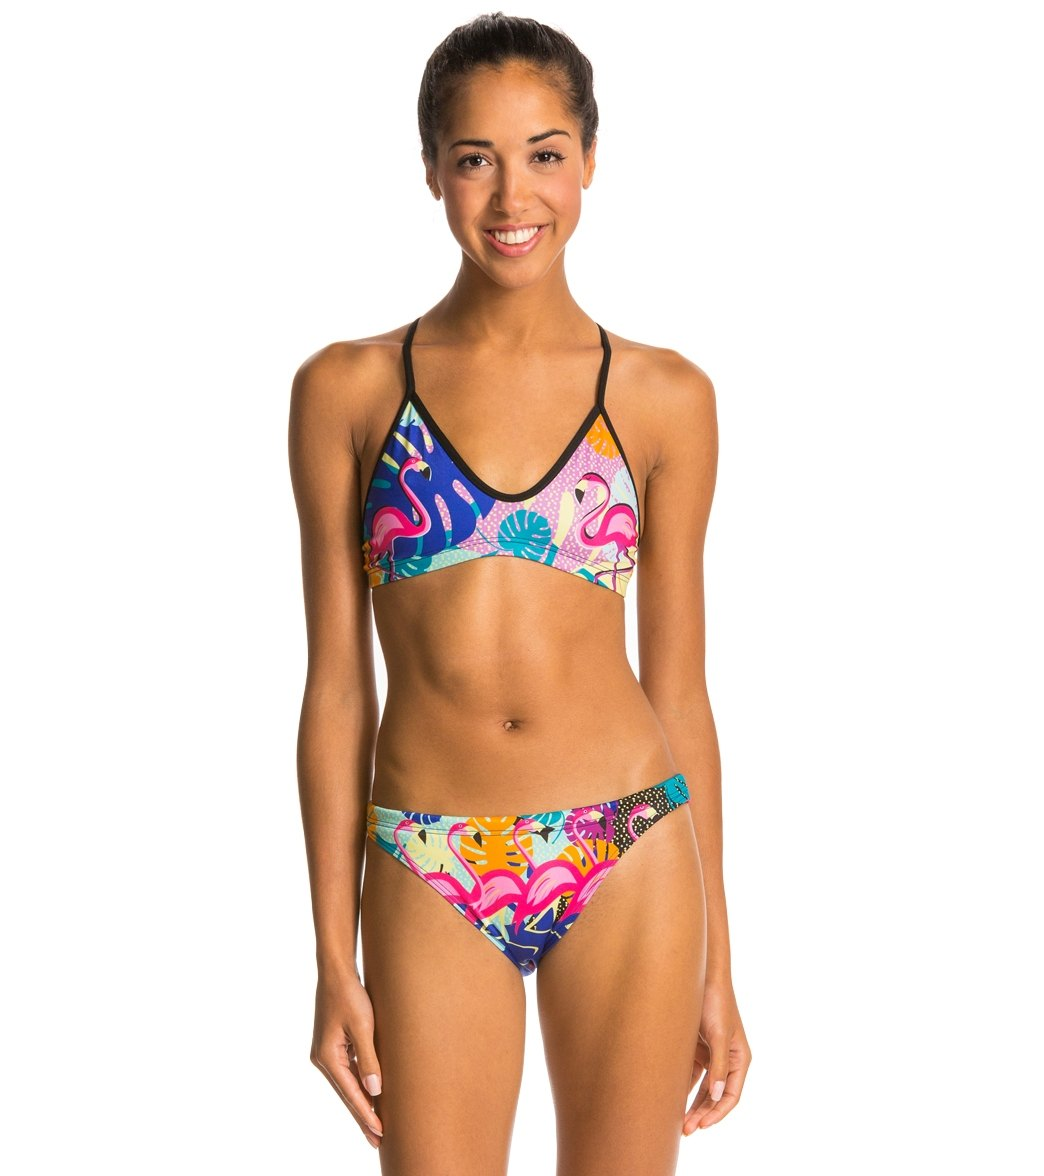 749f63605a072 Turbo Flamingo Two Piece Swimsuit at SwimOutlet.com - Free Shipping